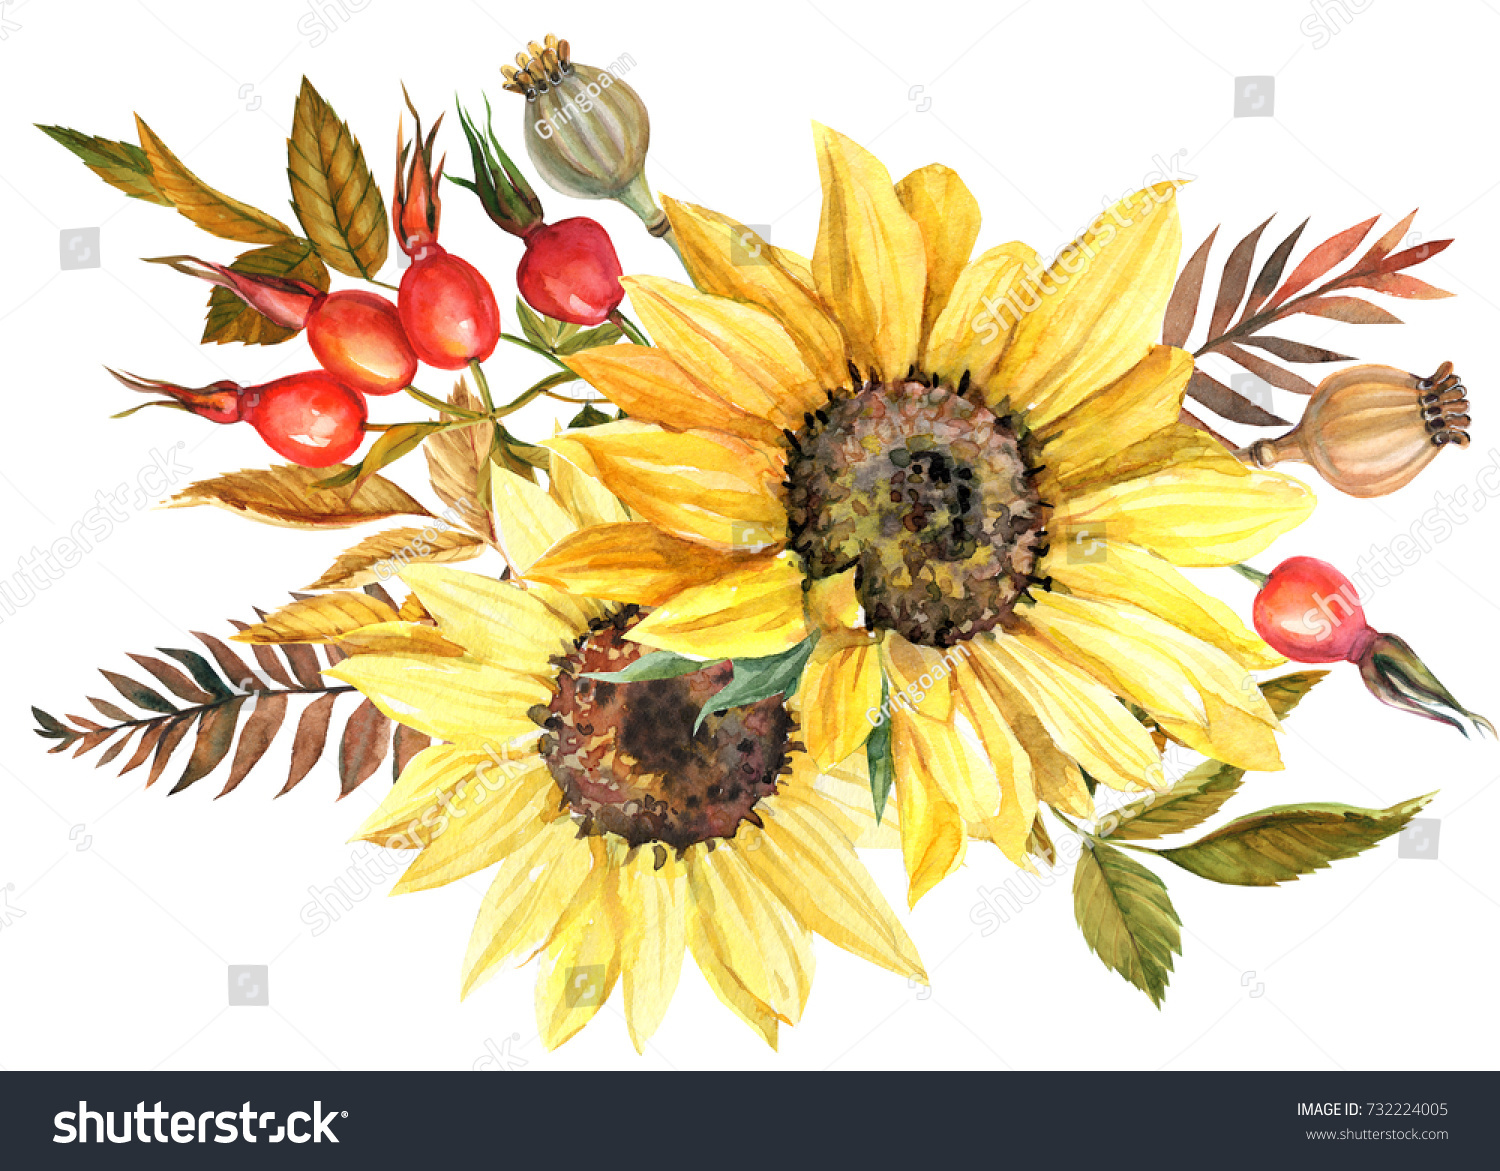 Watercolor Drawing Autumn Bouquet Sunflowers Poppy Stock Illustration 732224005